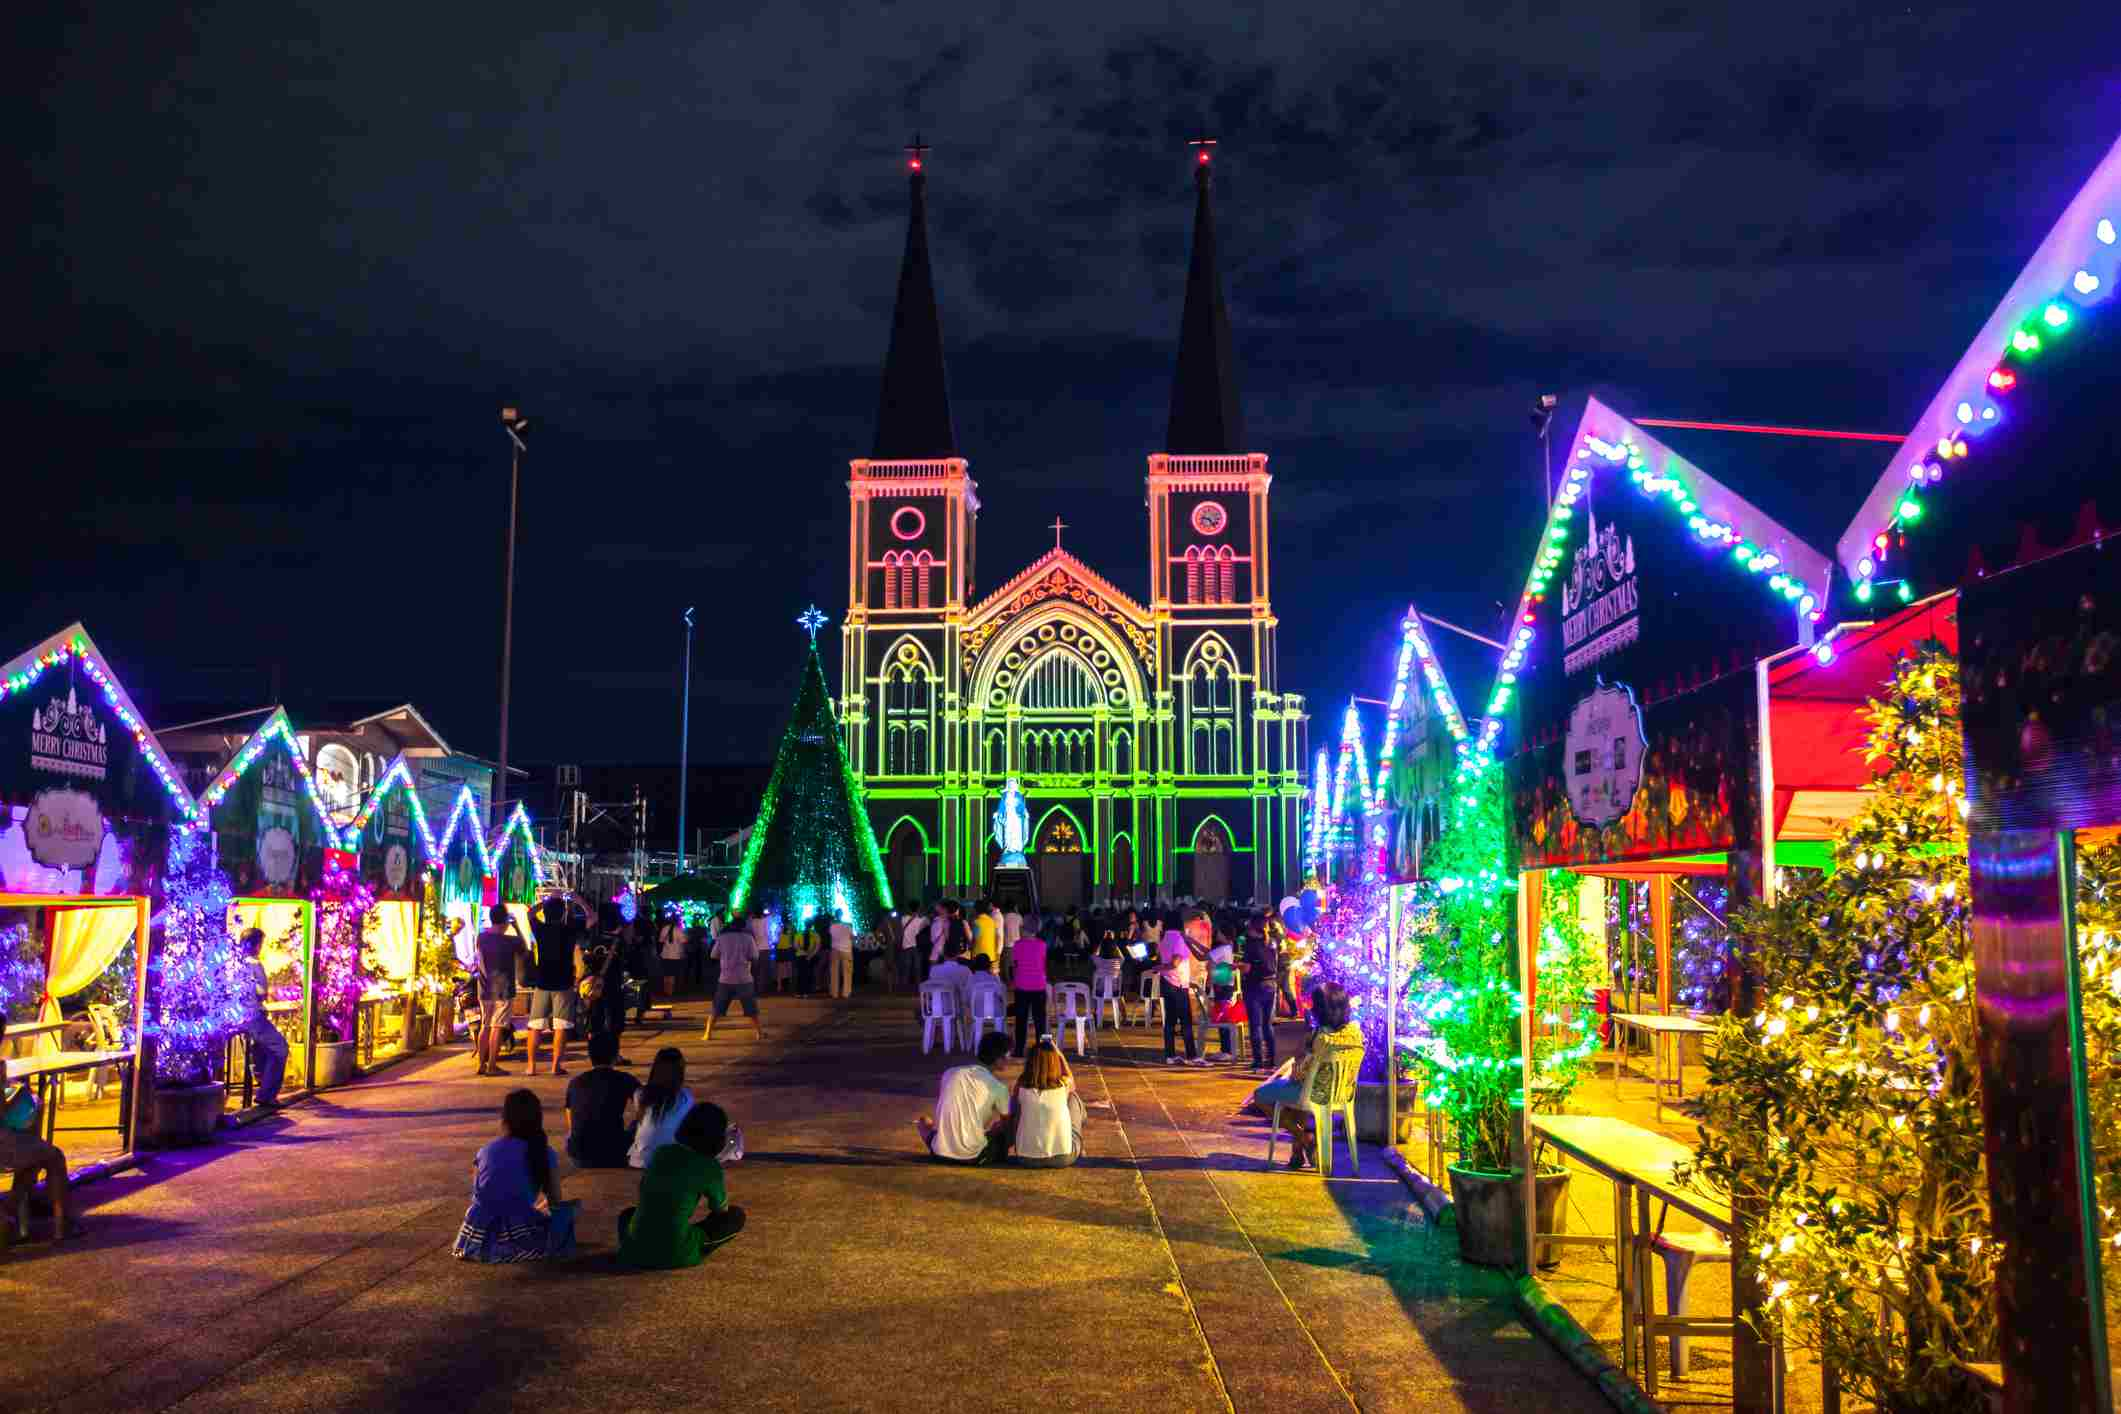 Christmas Stalls with colorful light in front of the Cathedral.